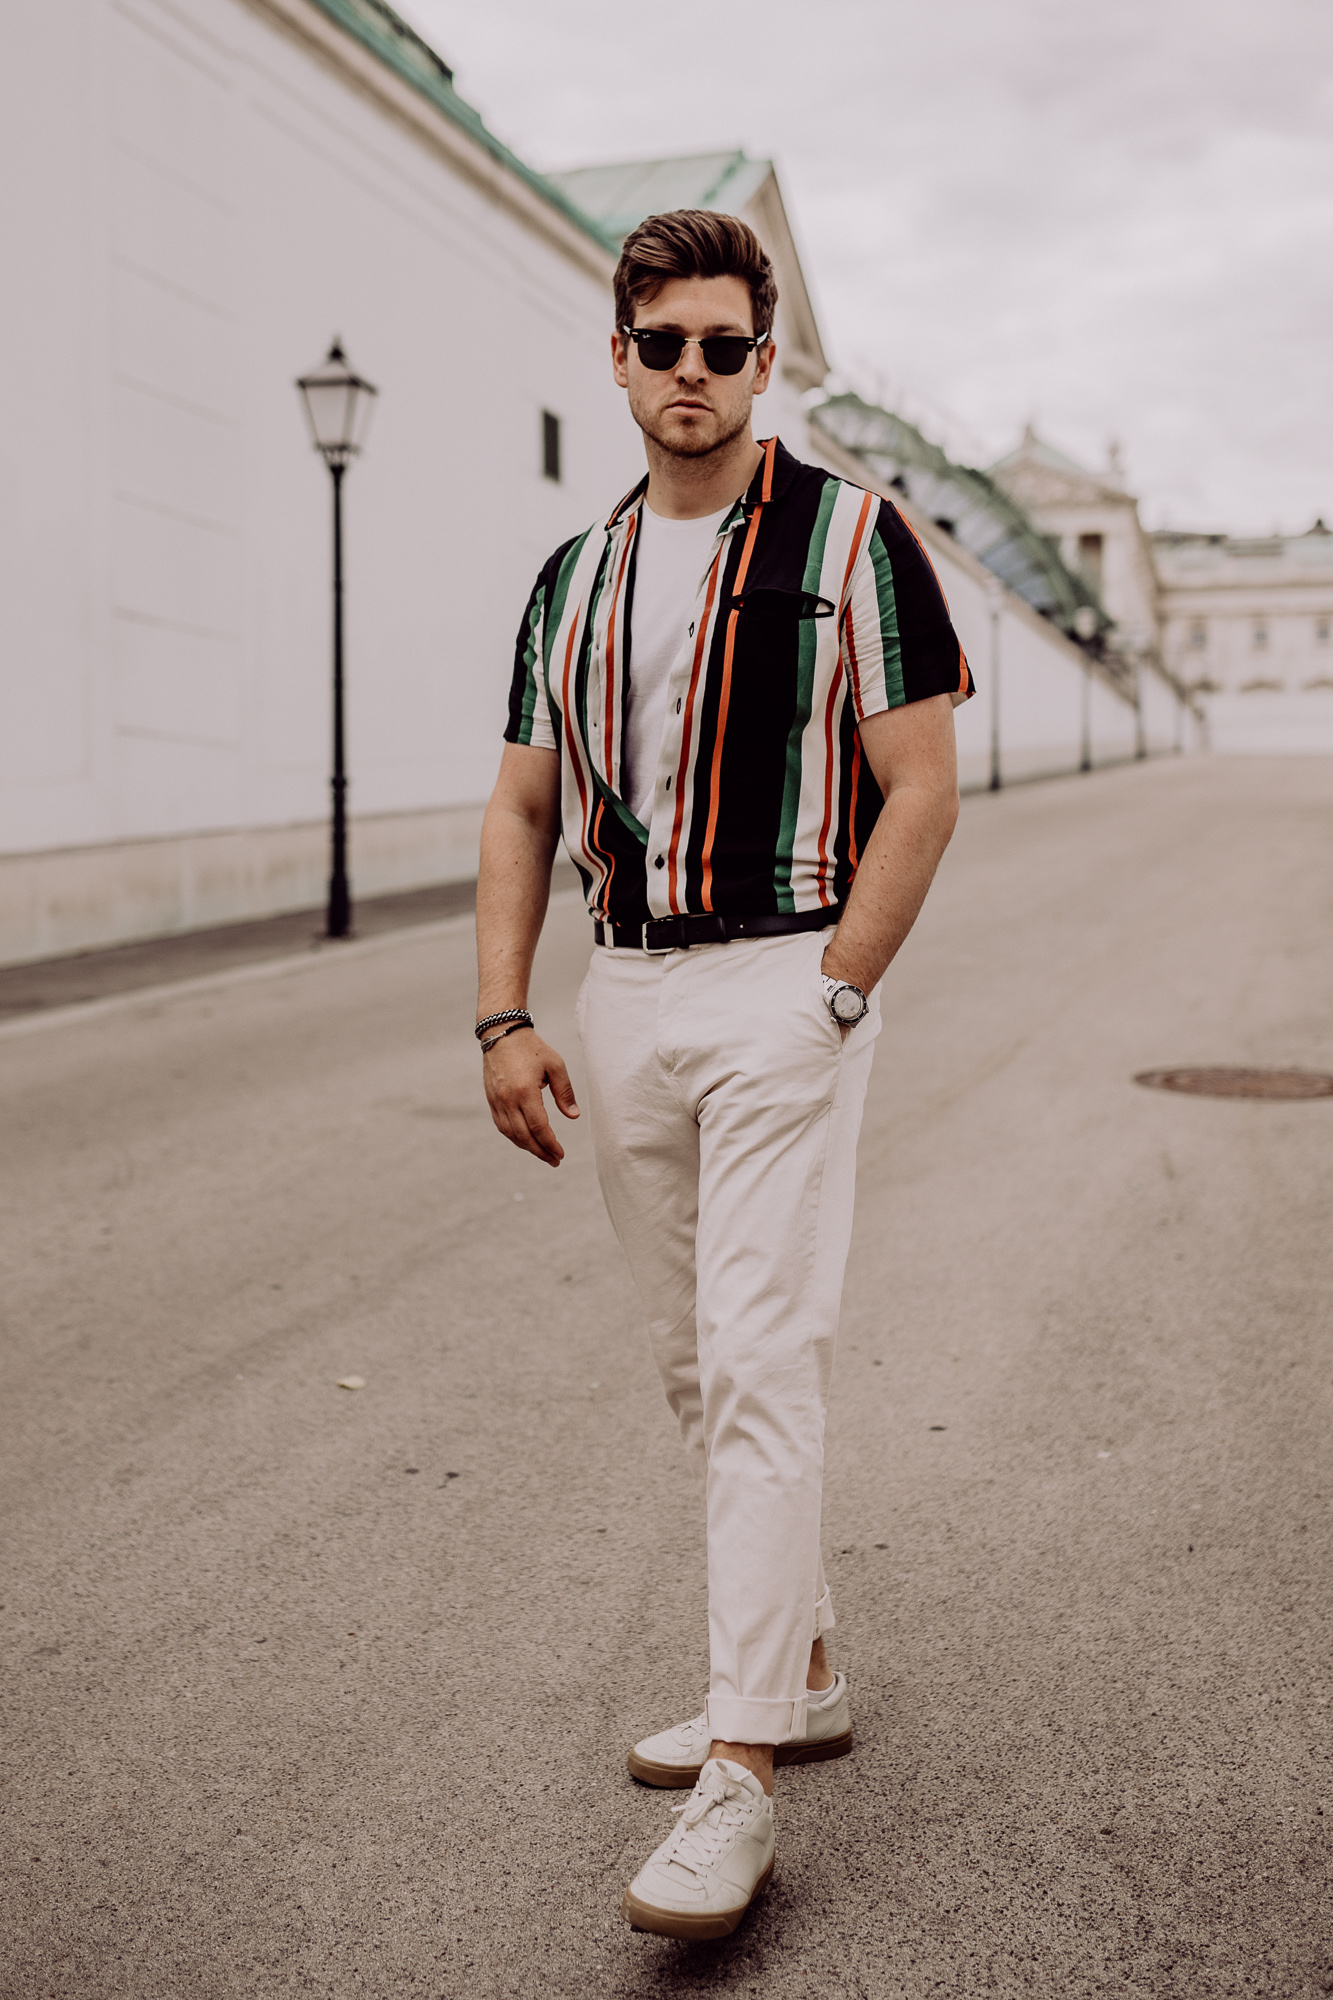 Striped Shirt - Summer Outfit Men - Sommerlook fuer